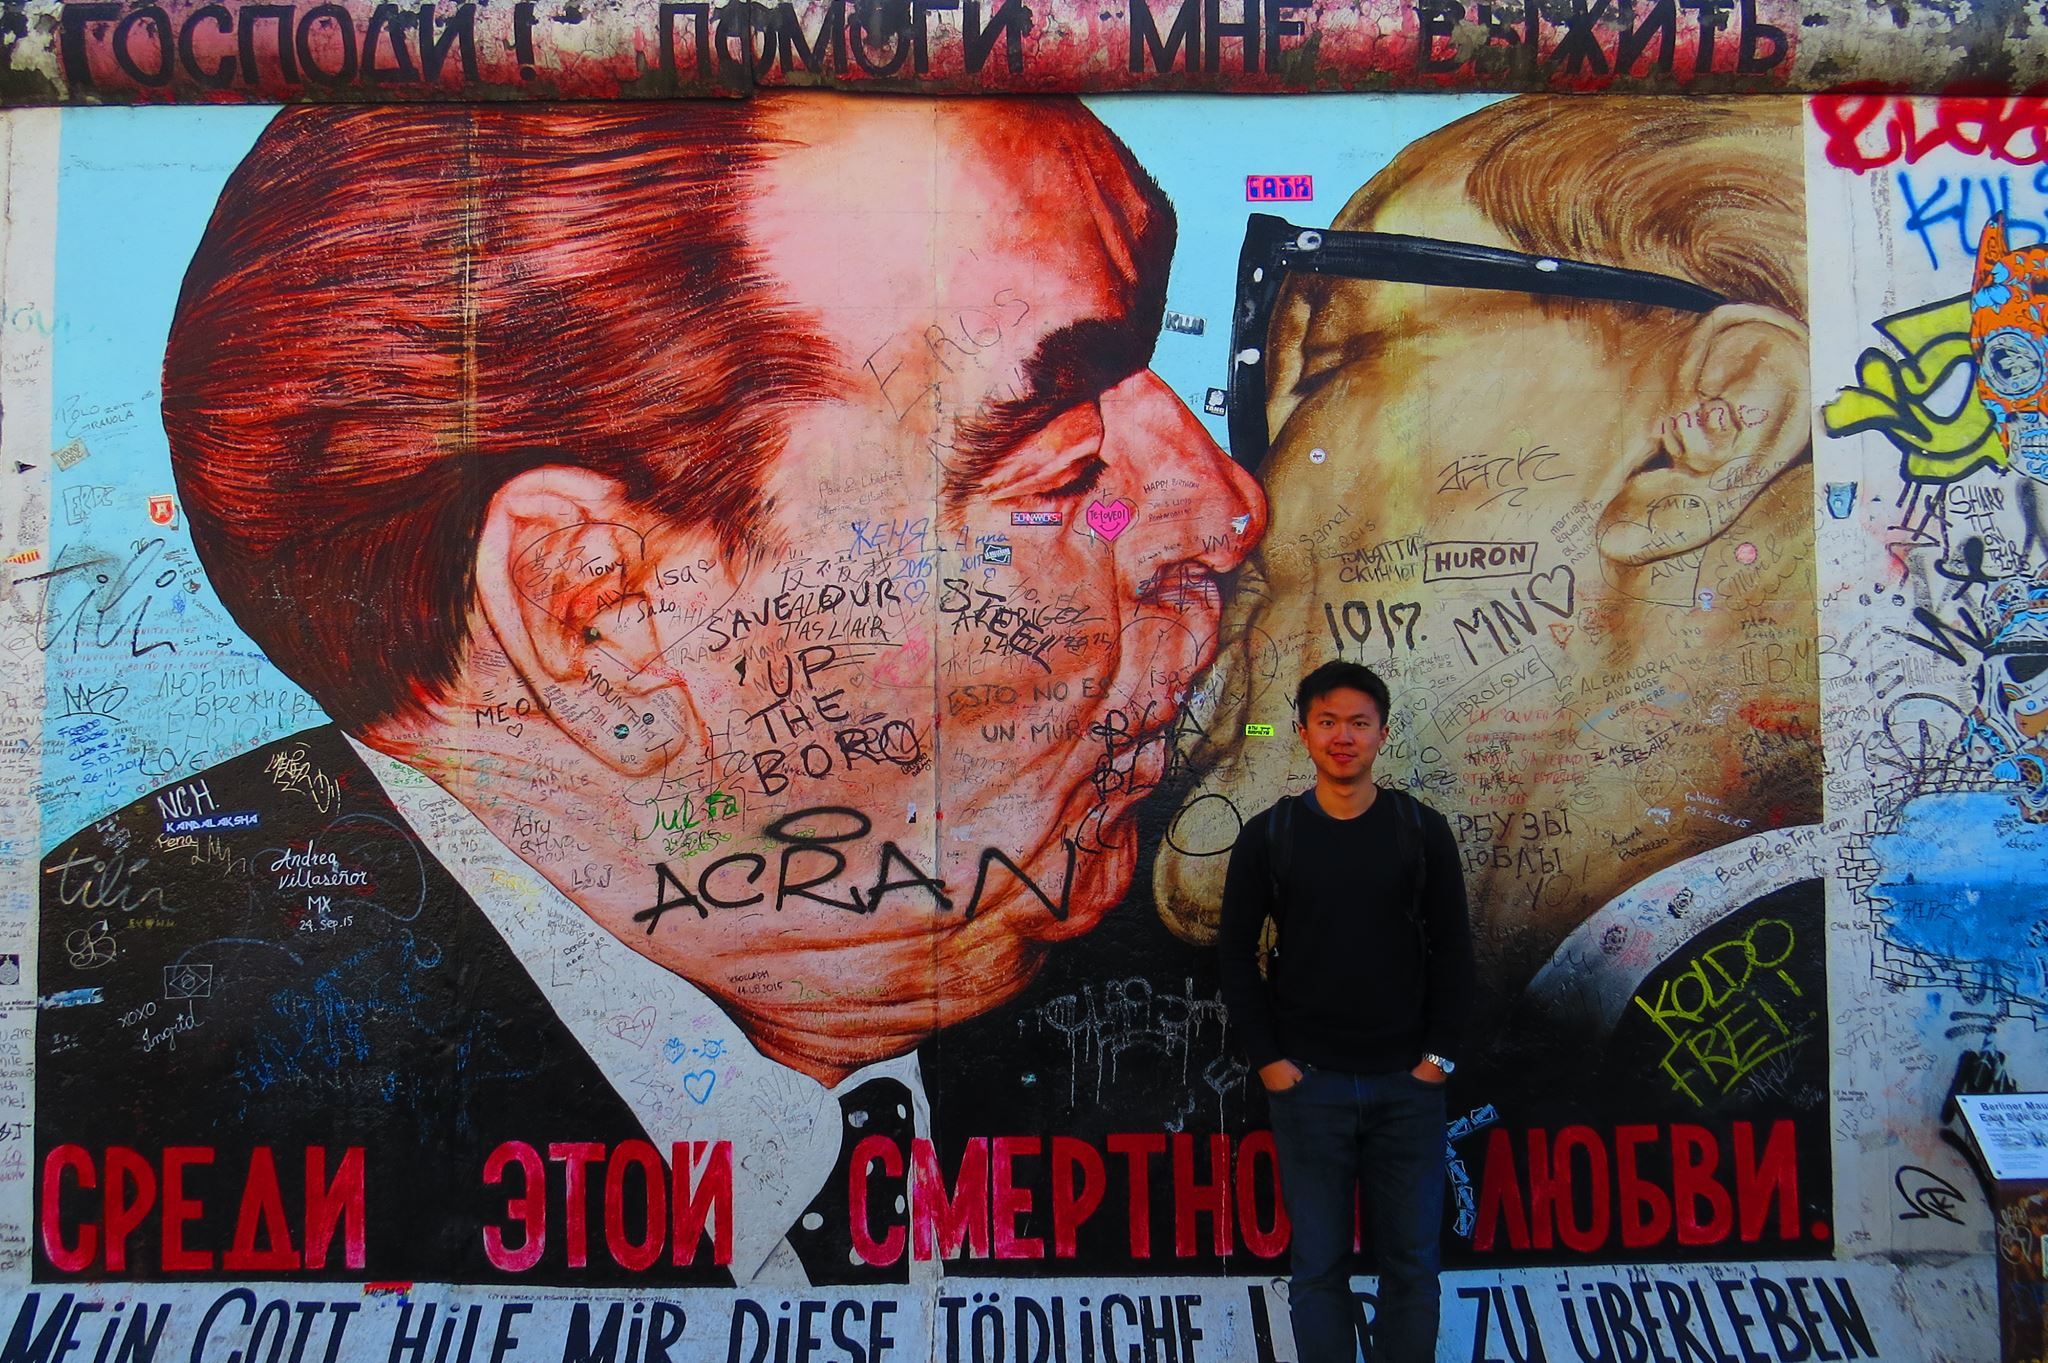 Andrew was in the East side gallery in Berlin.